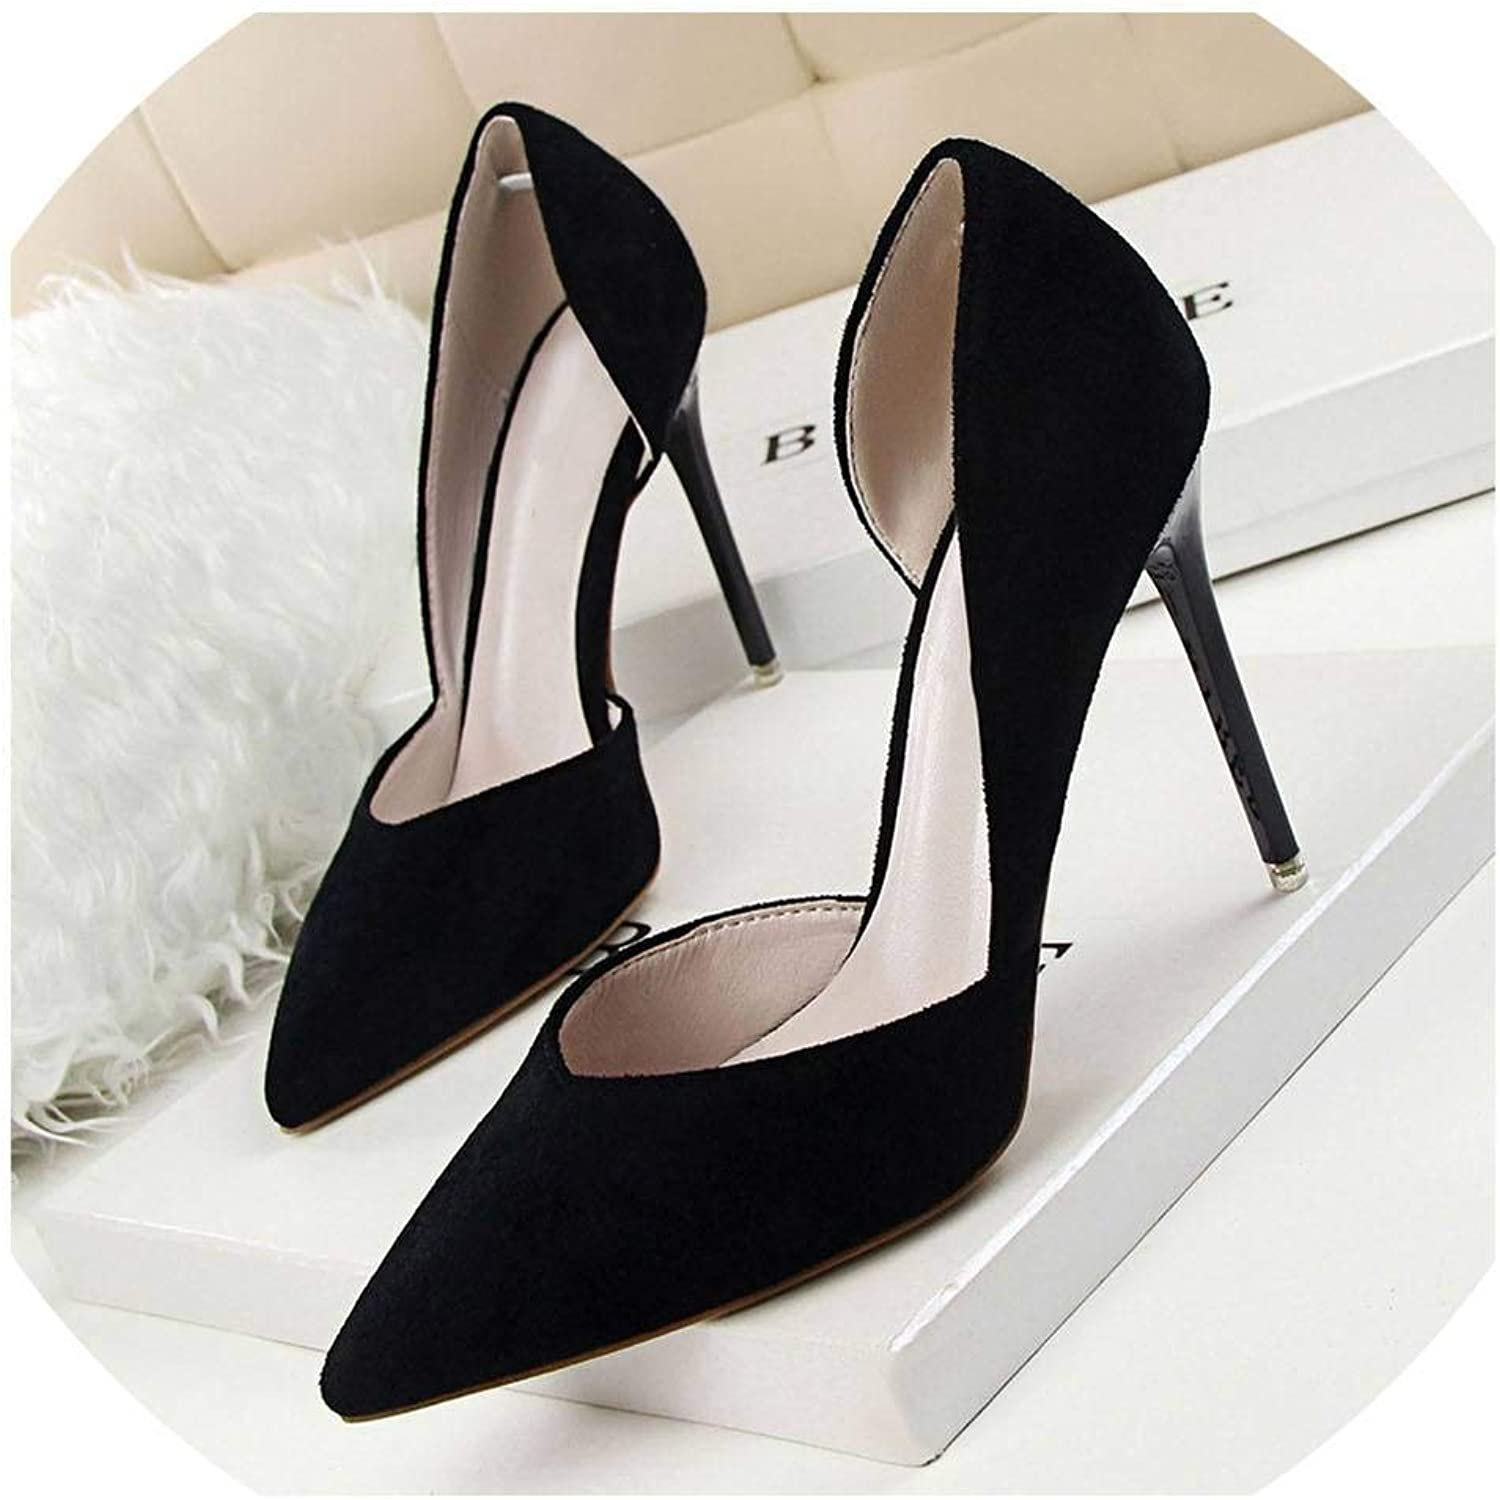 Lin-House Simple Delicate Thin with High Heel Suede Shallow Pointed Side Hollow Women's shoes